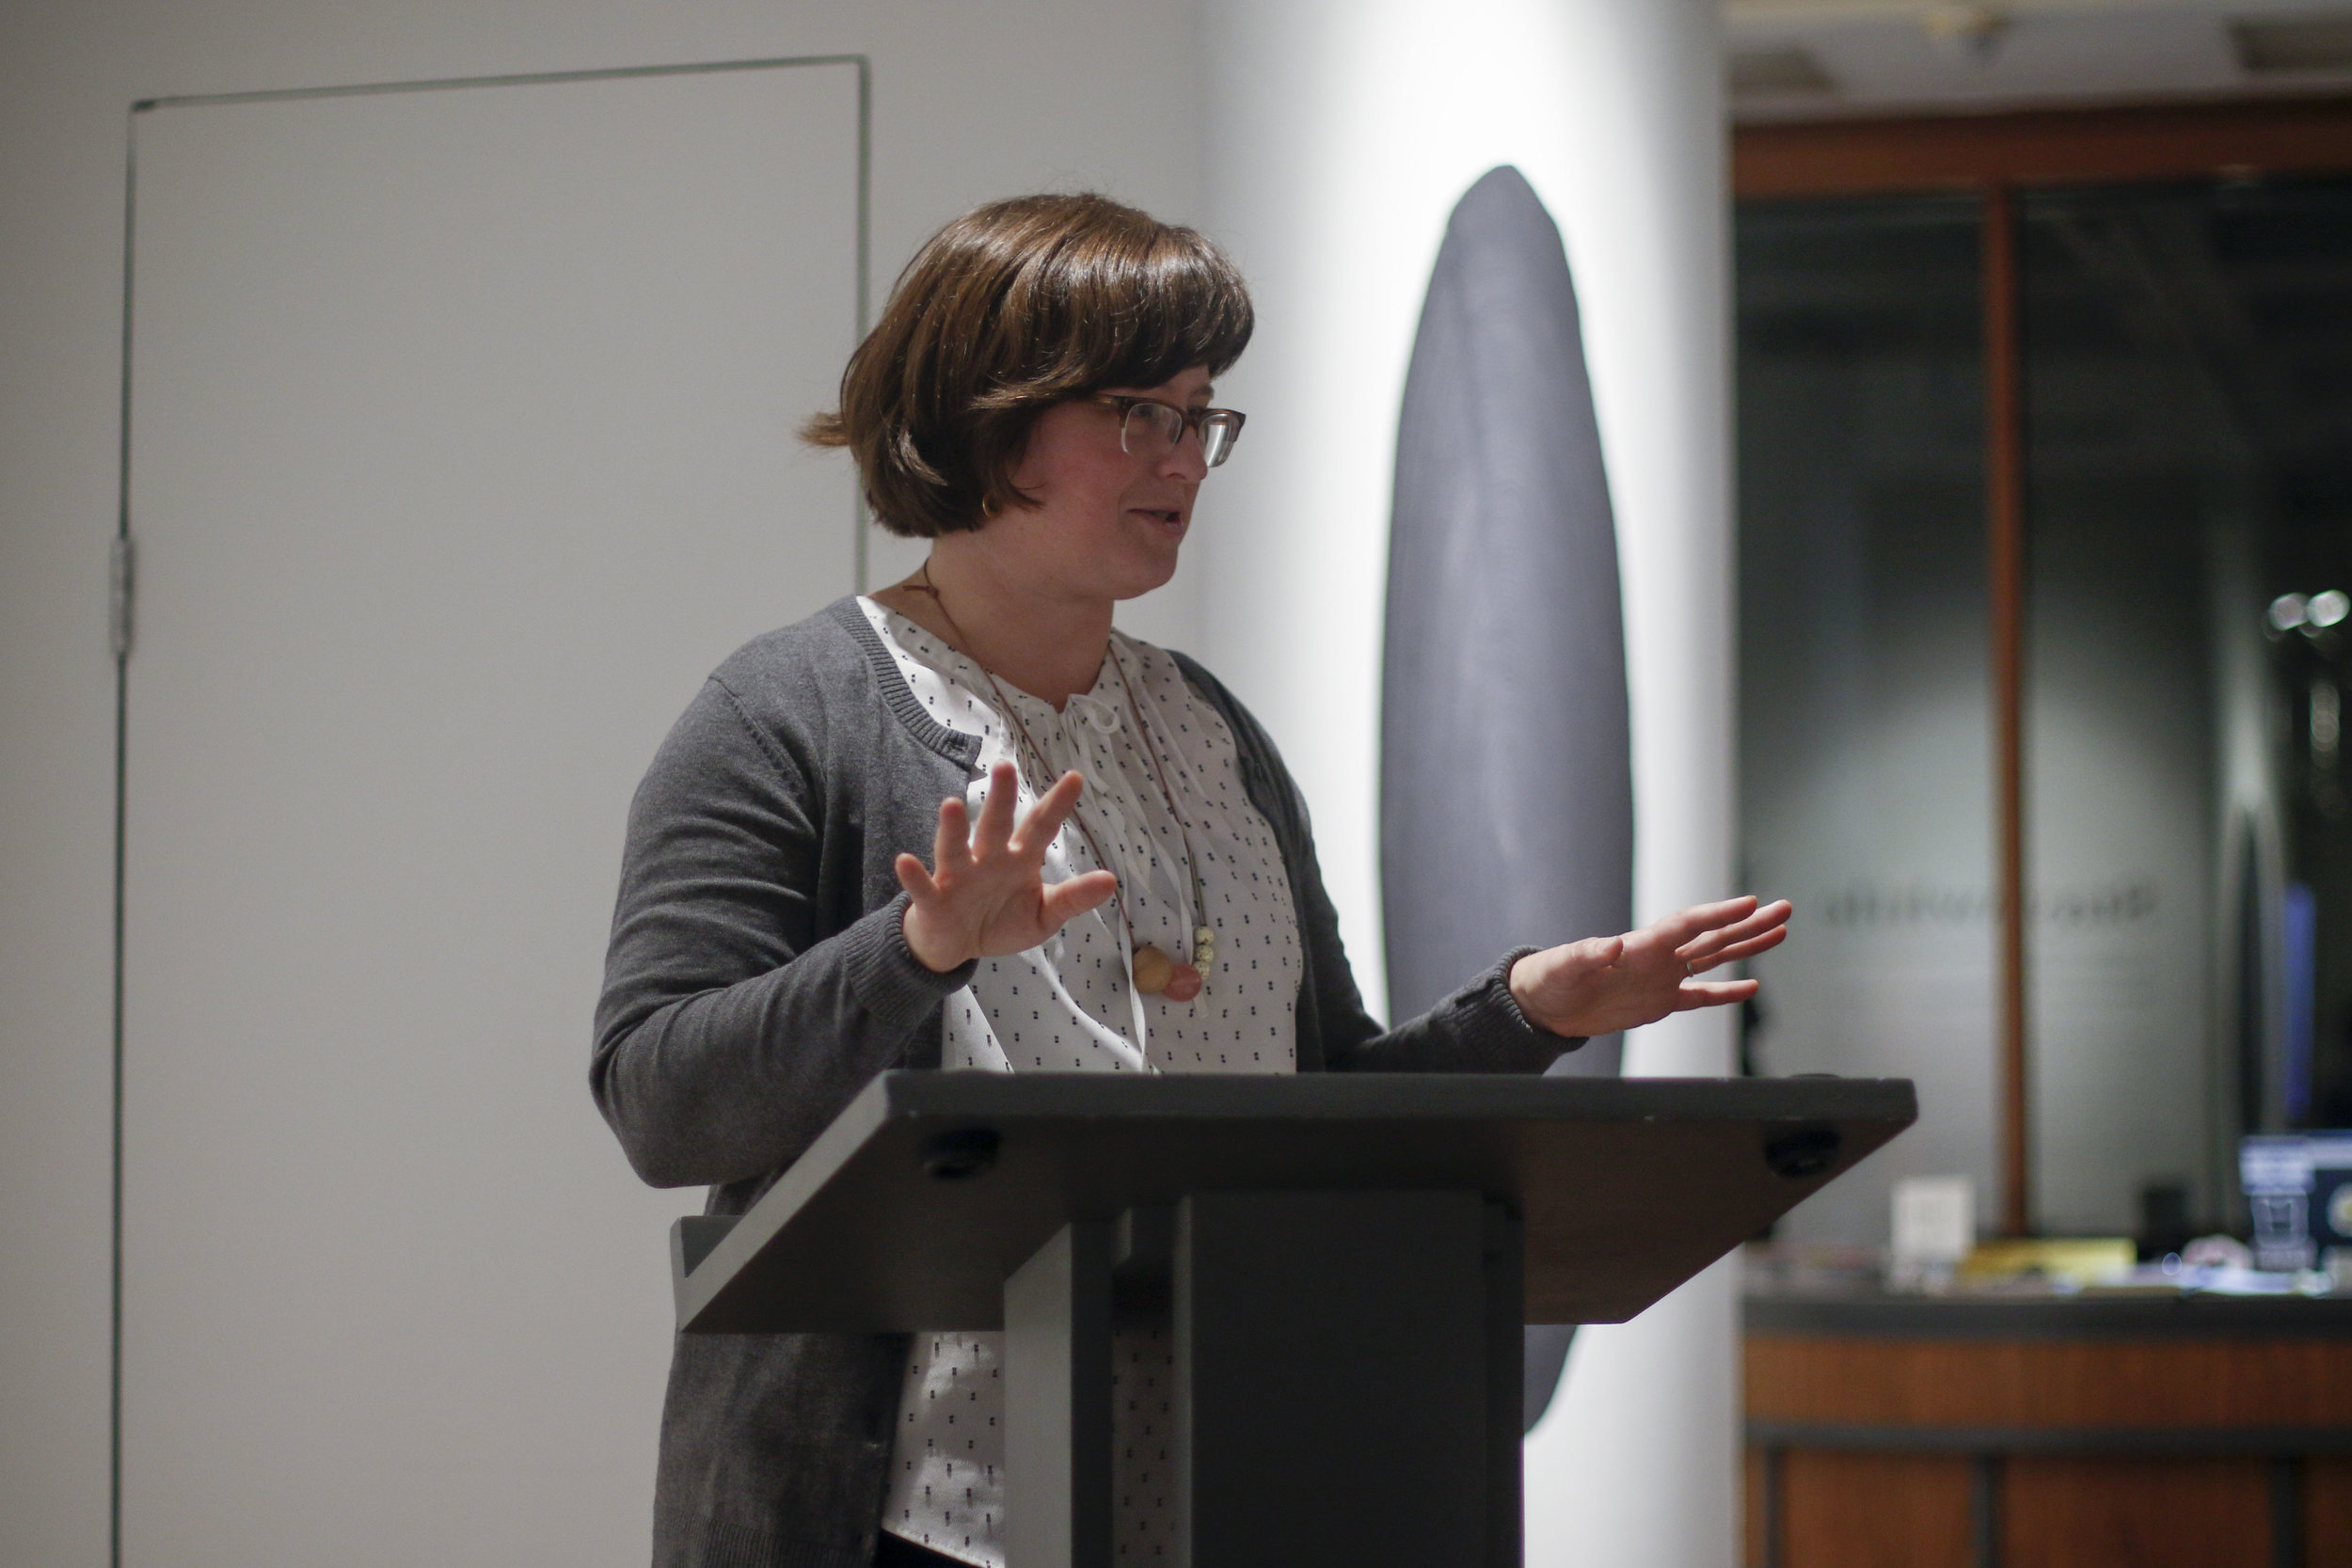 Gallery Director, Mara Baldwin, talks to the audience before an artist talk.